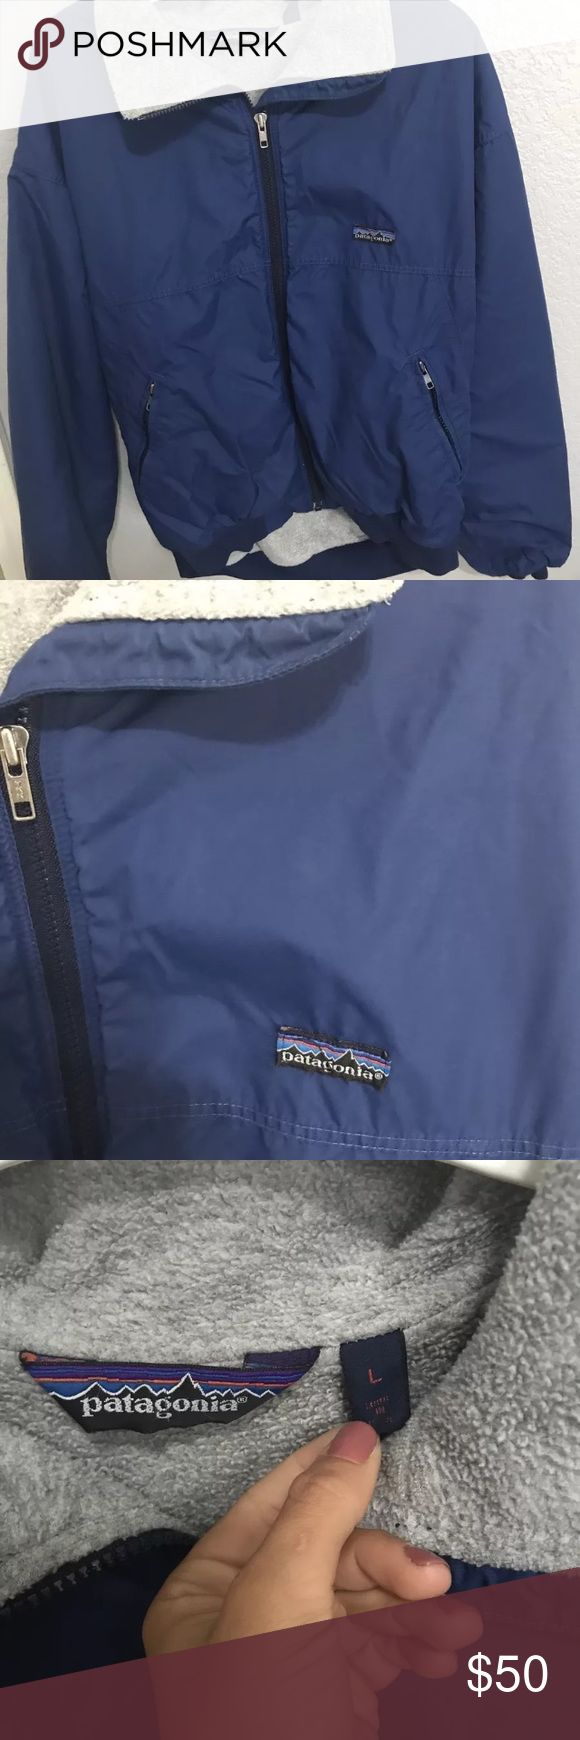 Navy Blue men's patagonia ski jacket Men's patagonia ski jackets  Outside shell is waterproof and navy blue color  Inside is fleece and is light grey Patagonia Jackets & Coats